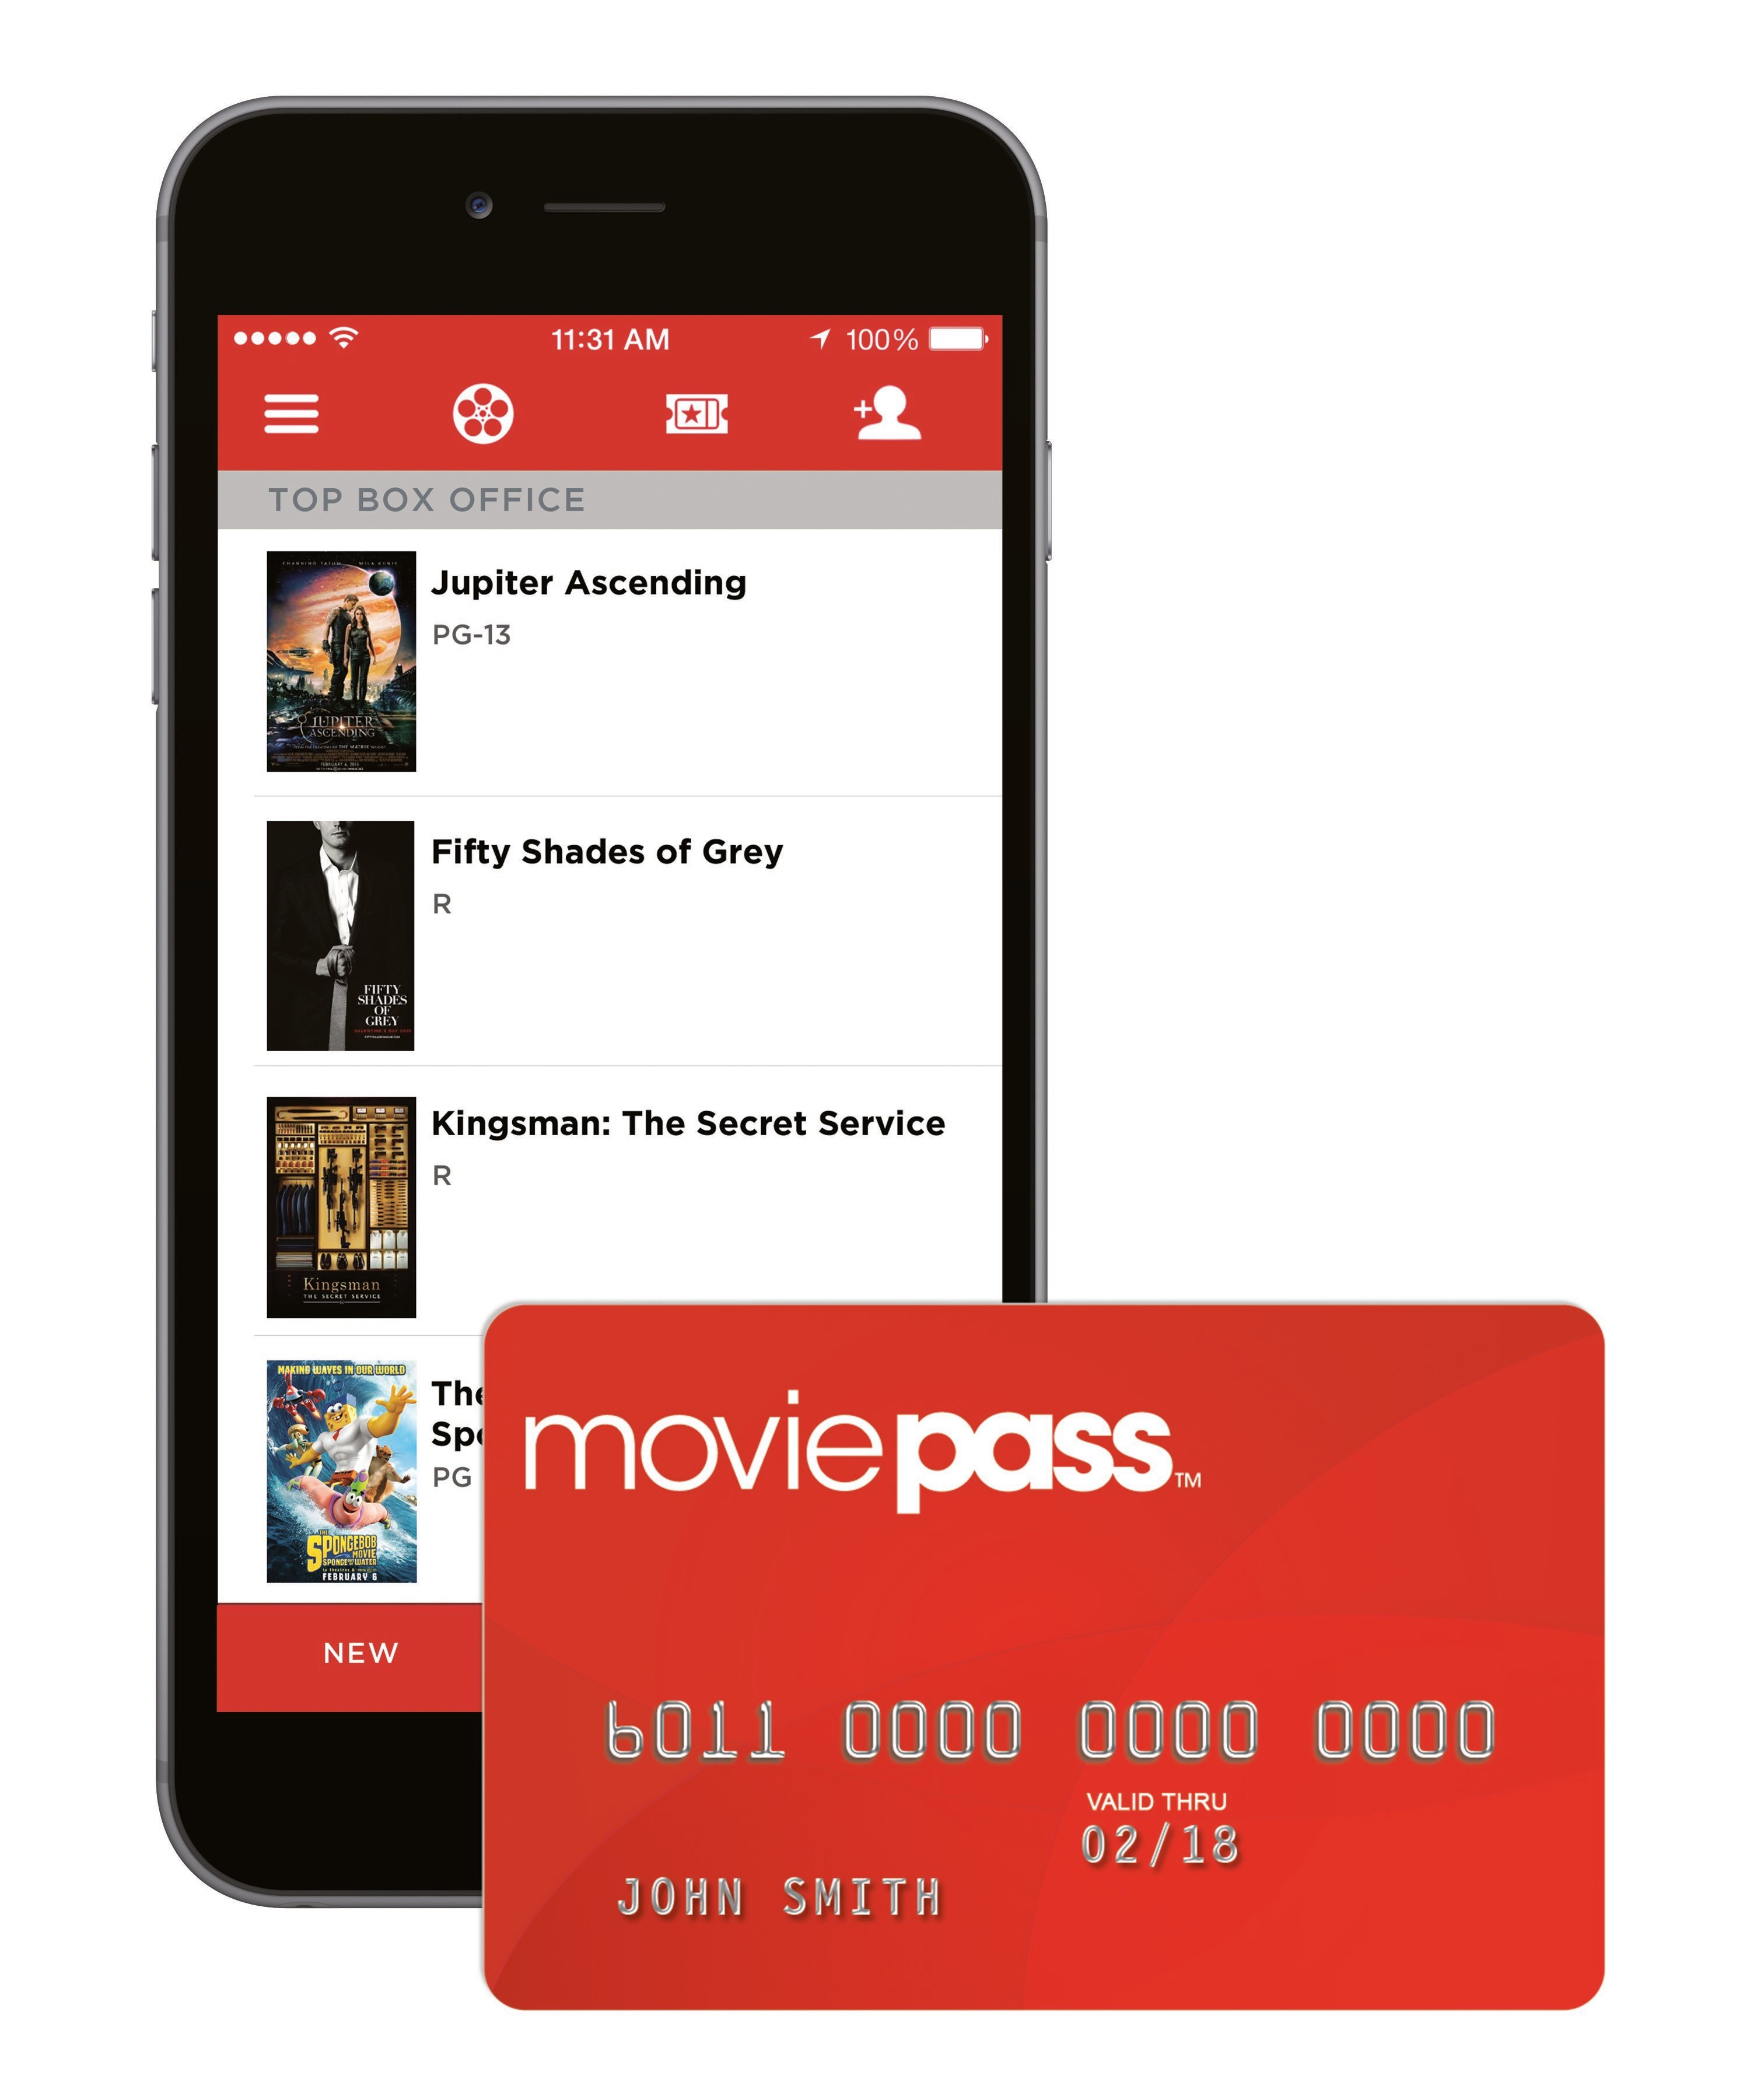 The $10 a month unlimited movie service just crossed two million subscribers less than one month after passing 1.5 million users, the company announced on Thursday.